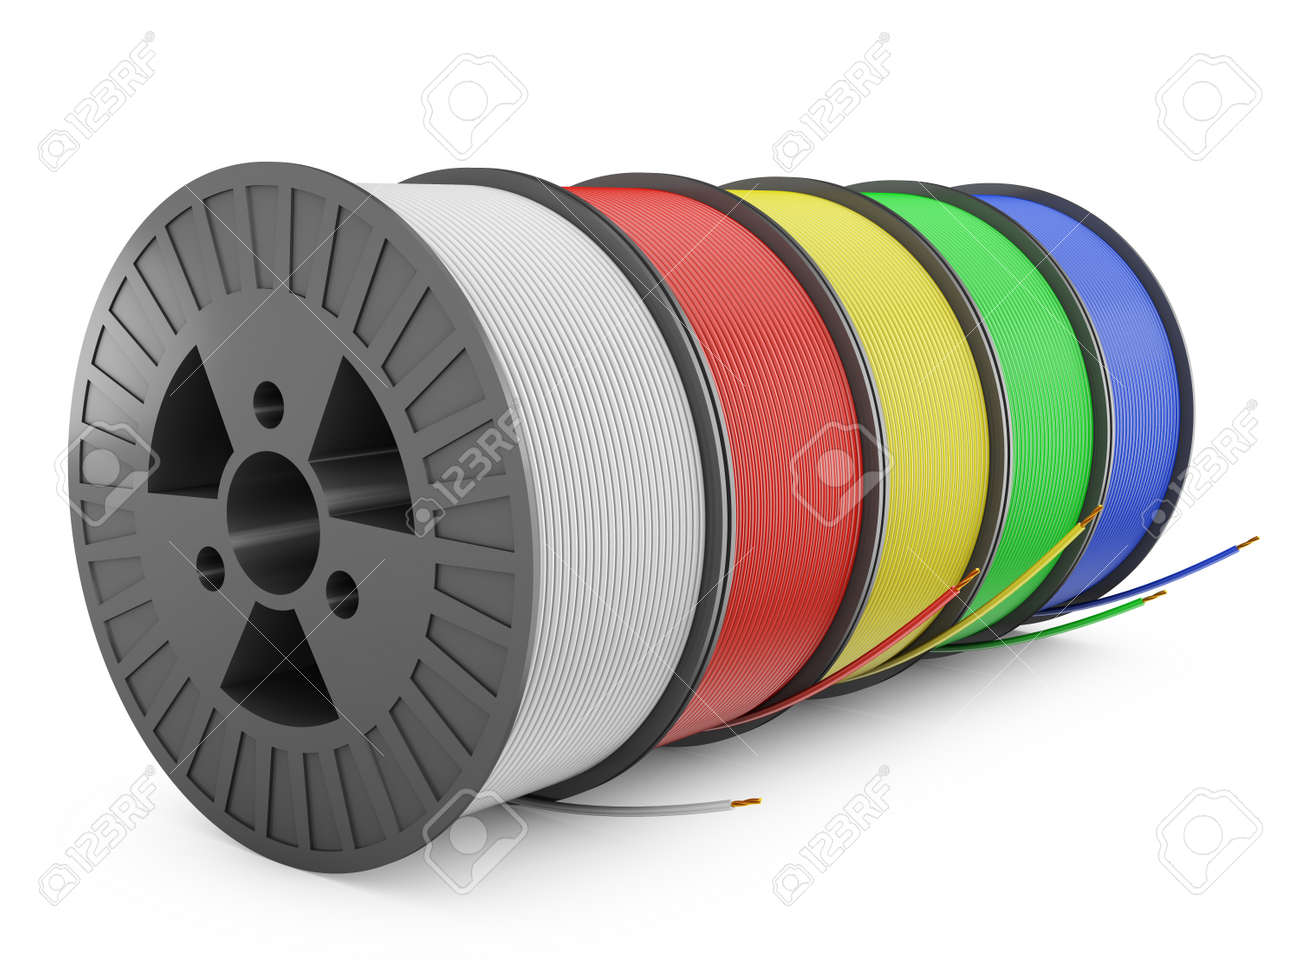 Five Plastic Reel With Colored Wires, 3d Render Stock Photo, Picture ...